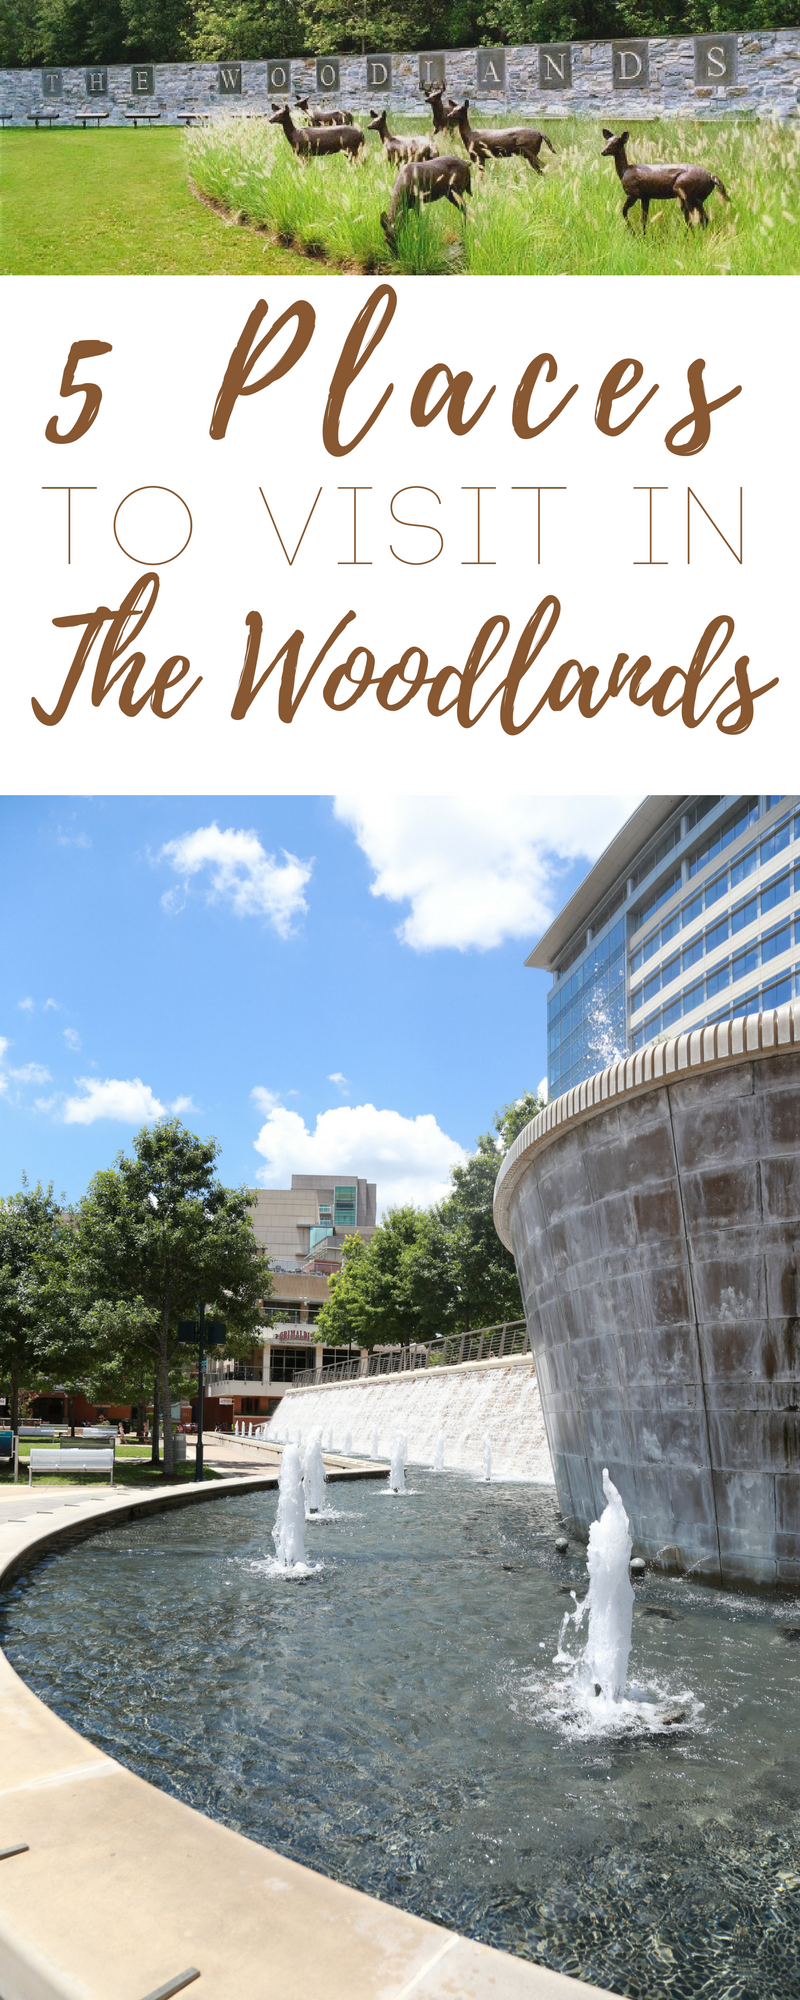 If you plan on visiting the Houston area, here are 5 places to visit in The Woodlands, Texas, a small community on the north side of Houston.